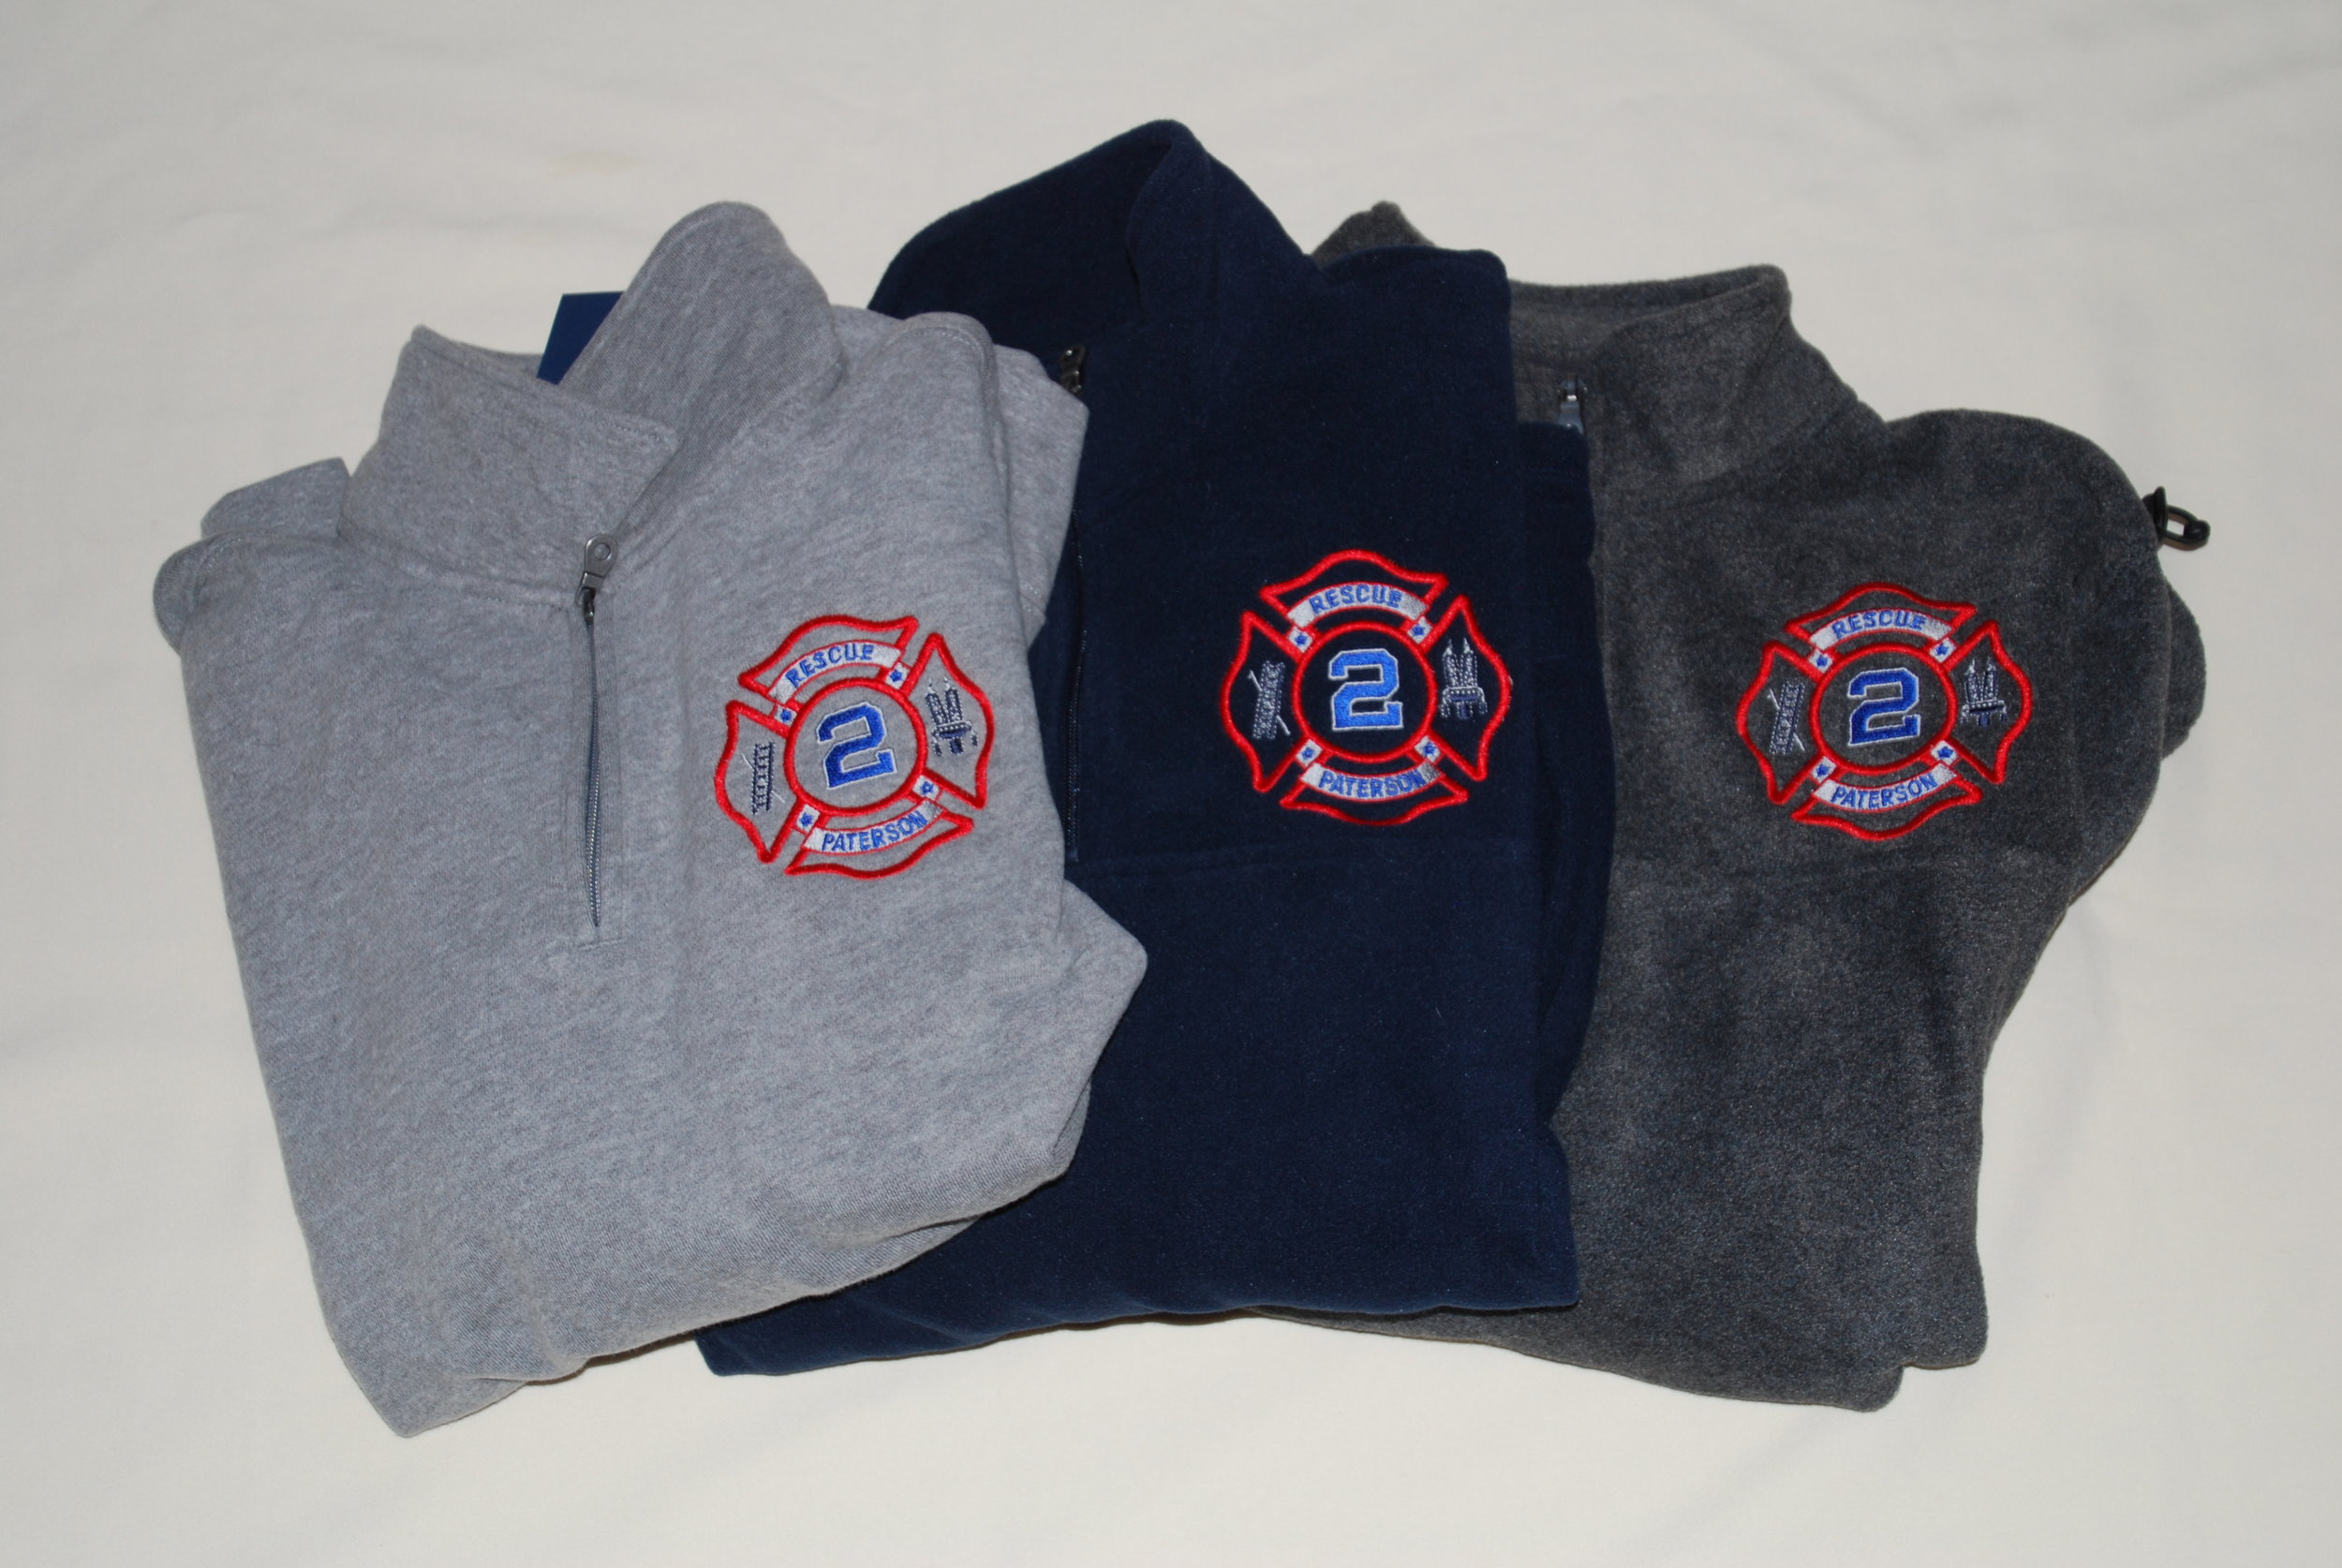 PFD_RES2CUE pullovers.JPG